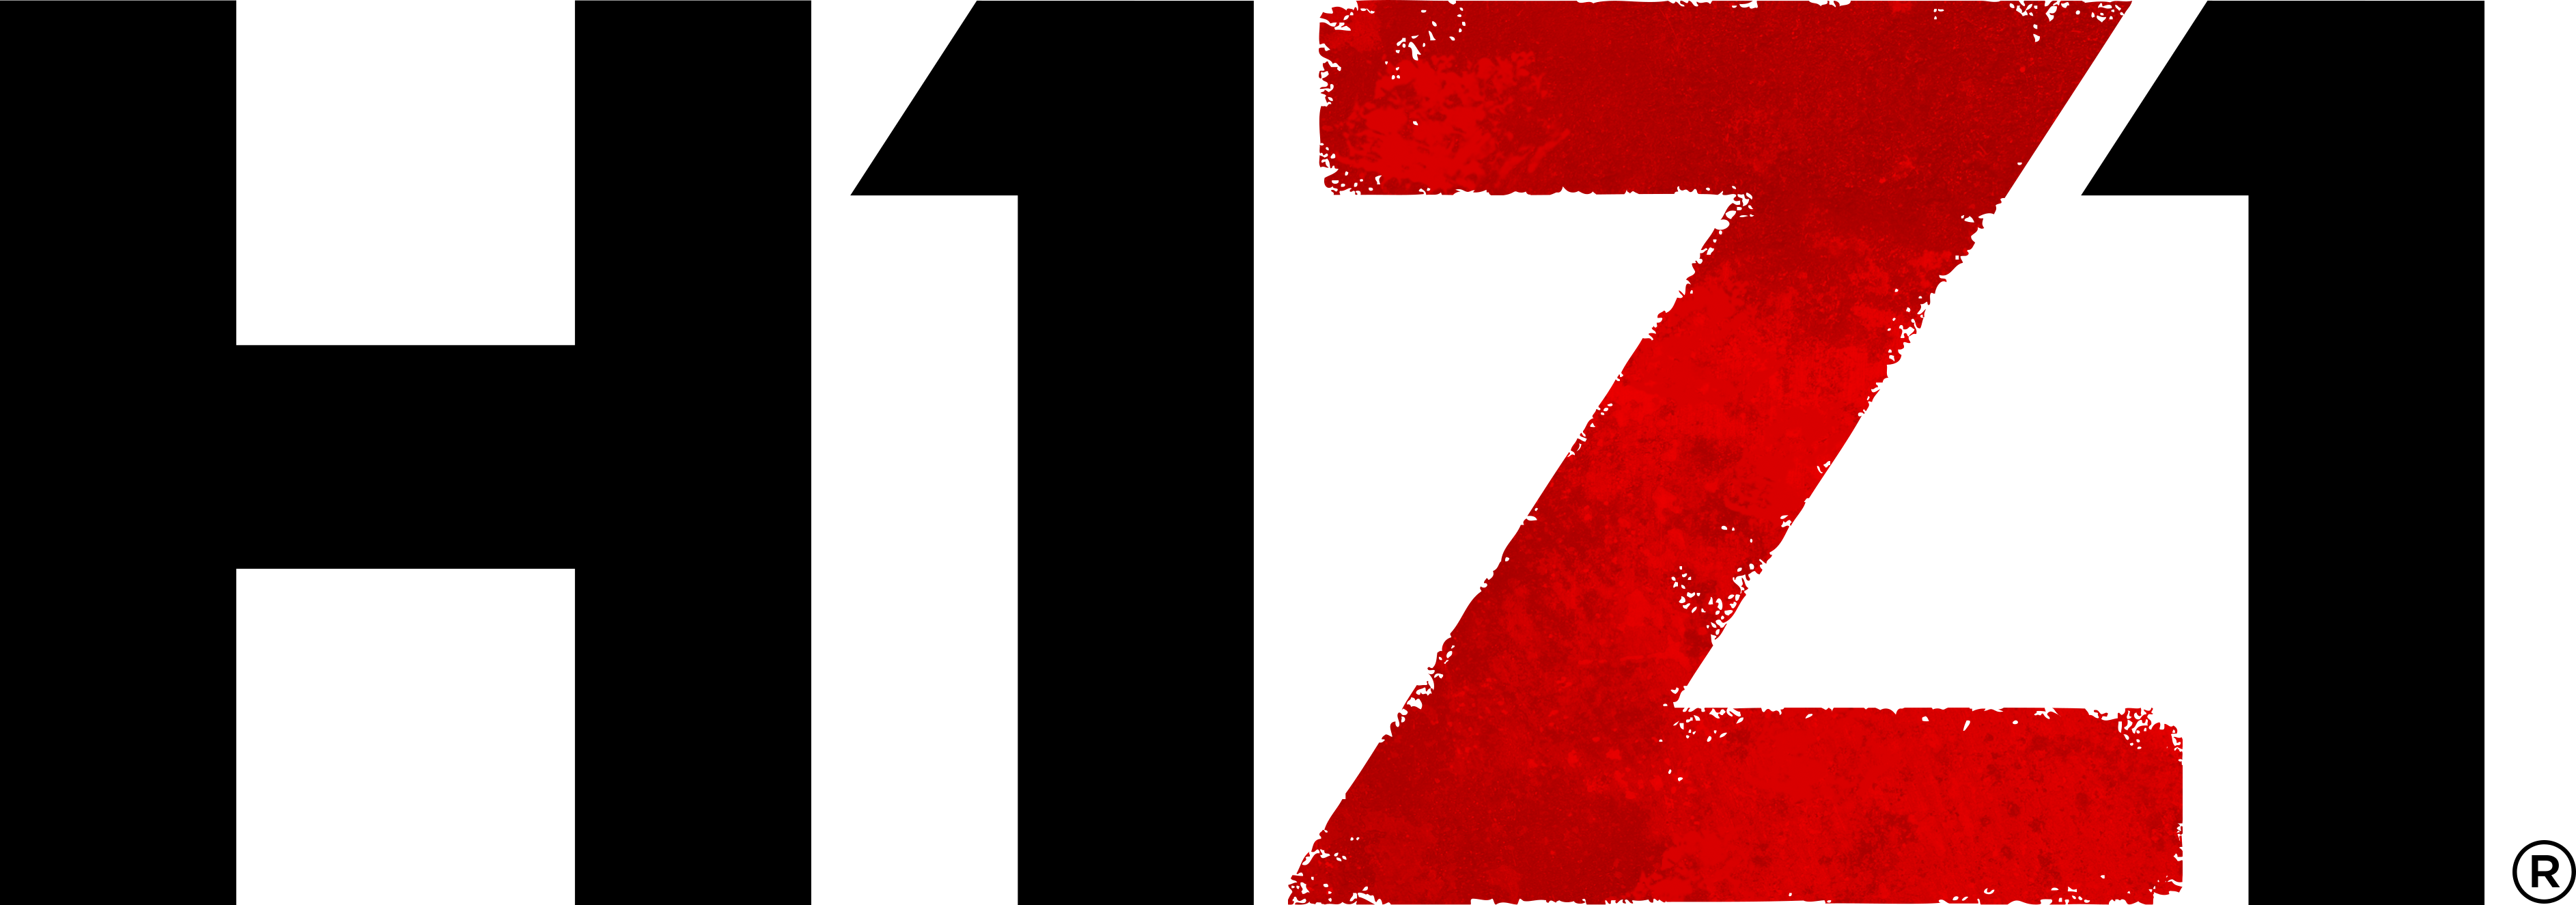 HD H1z1® To Launch Free To Play On Playstation®.